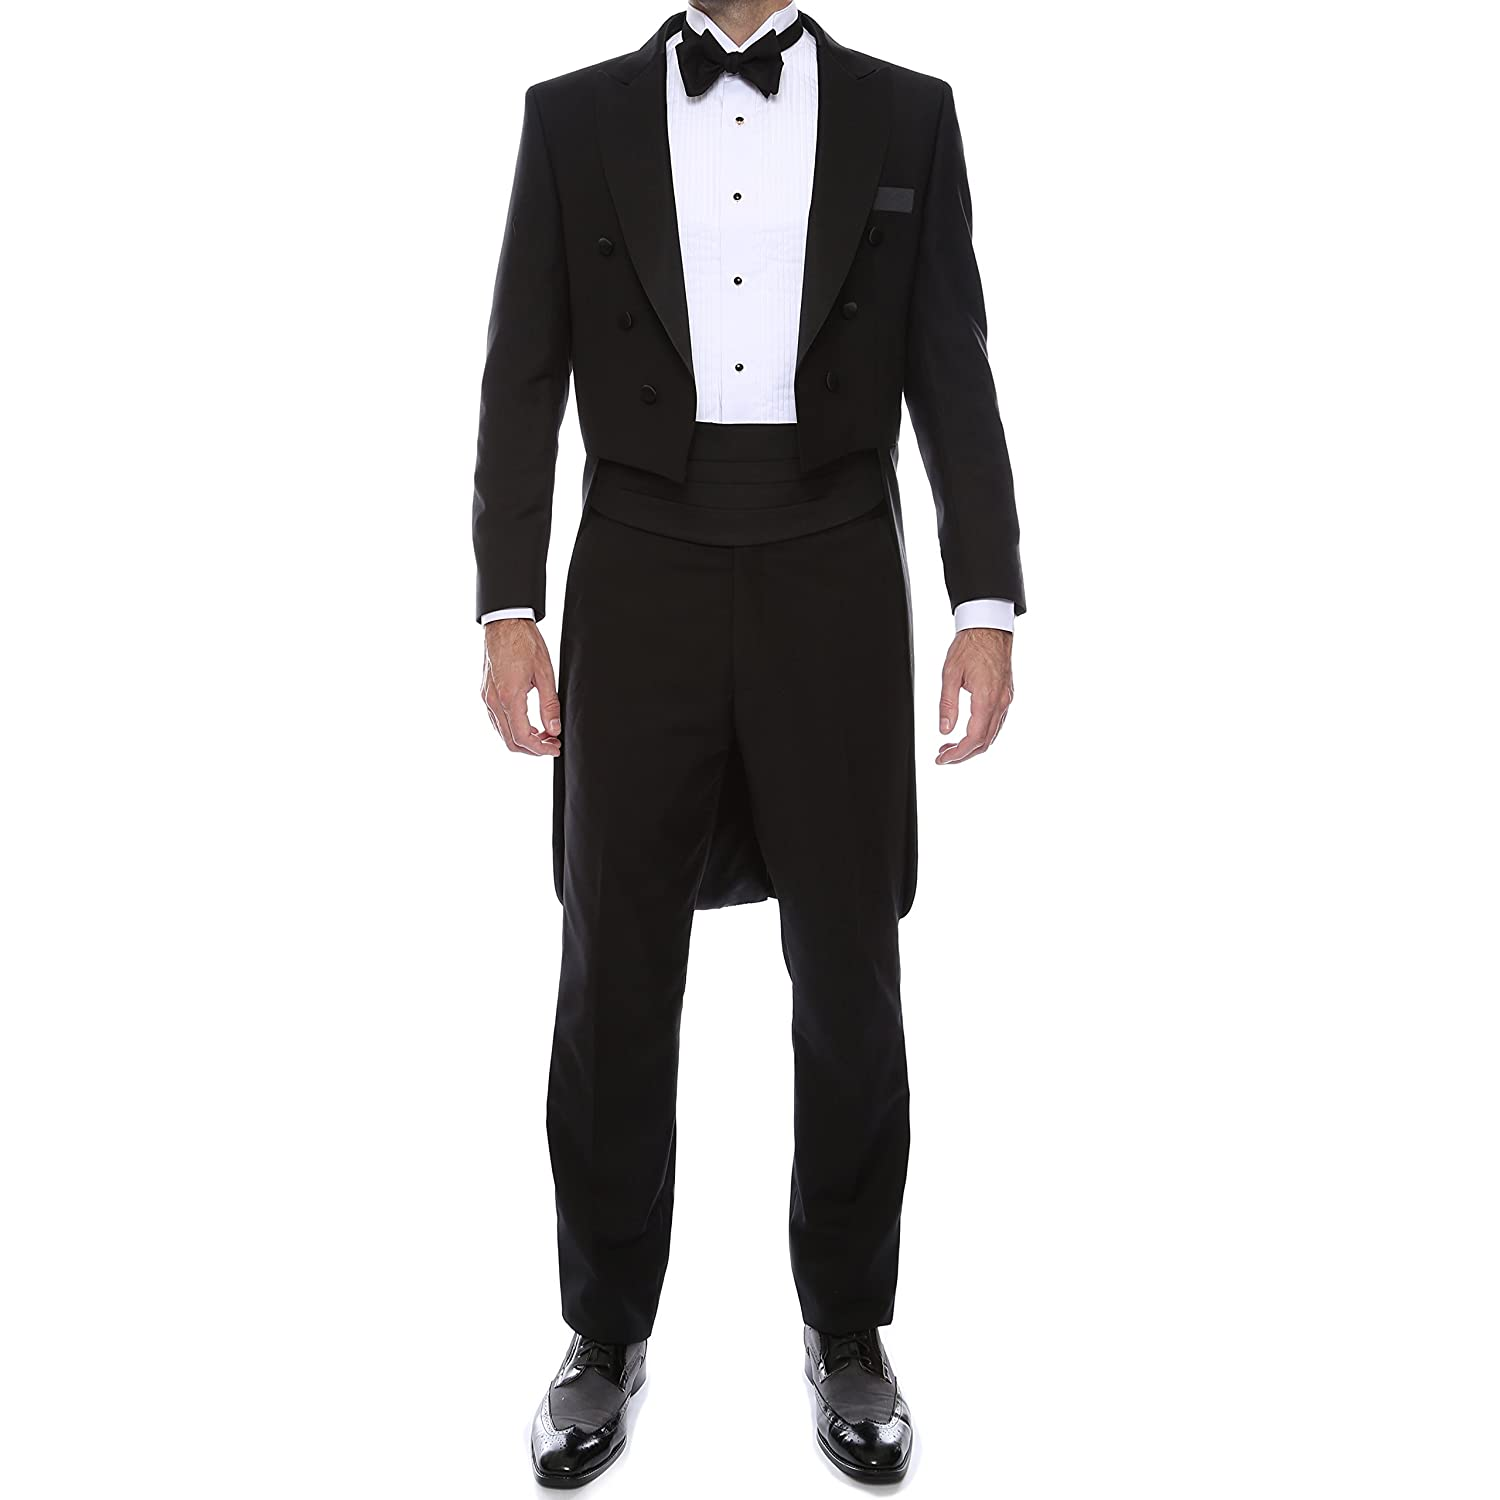 Edwardian Titanic Mens Formal Suit Guide Ferrecci Premium Mens 2pc Victorian Tail Tuxedo - Tailcoat & Slacks $109.75 AT vintagedancer.com